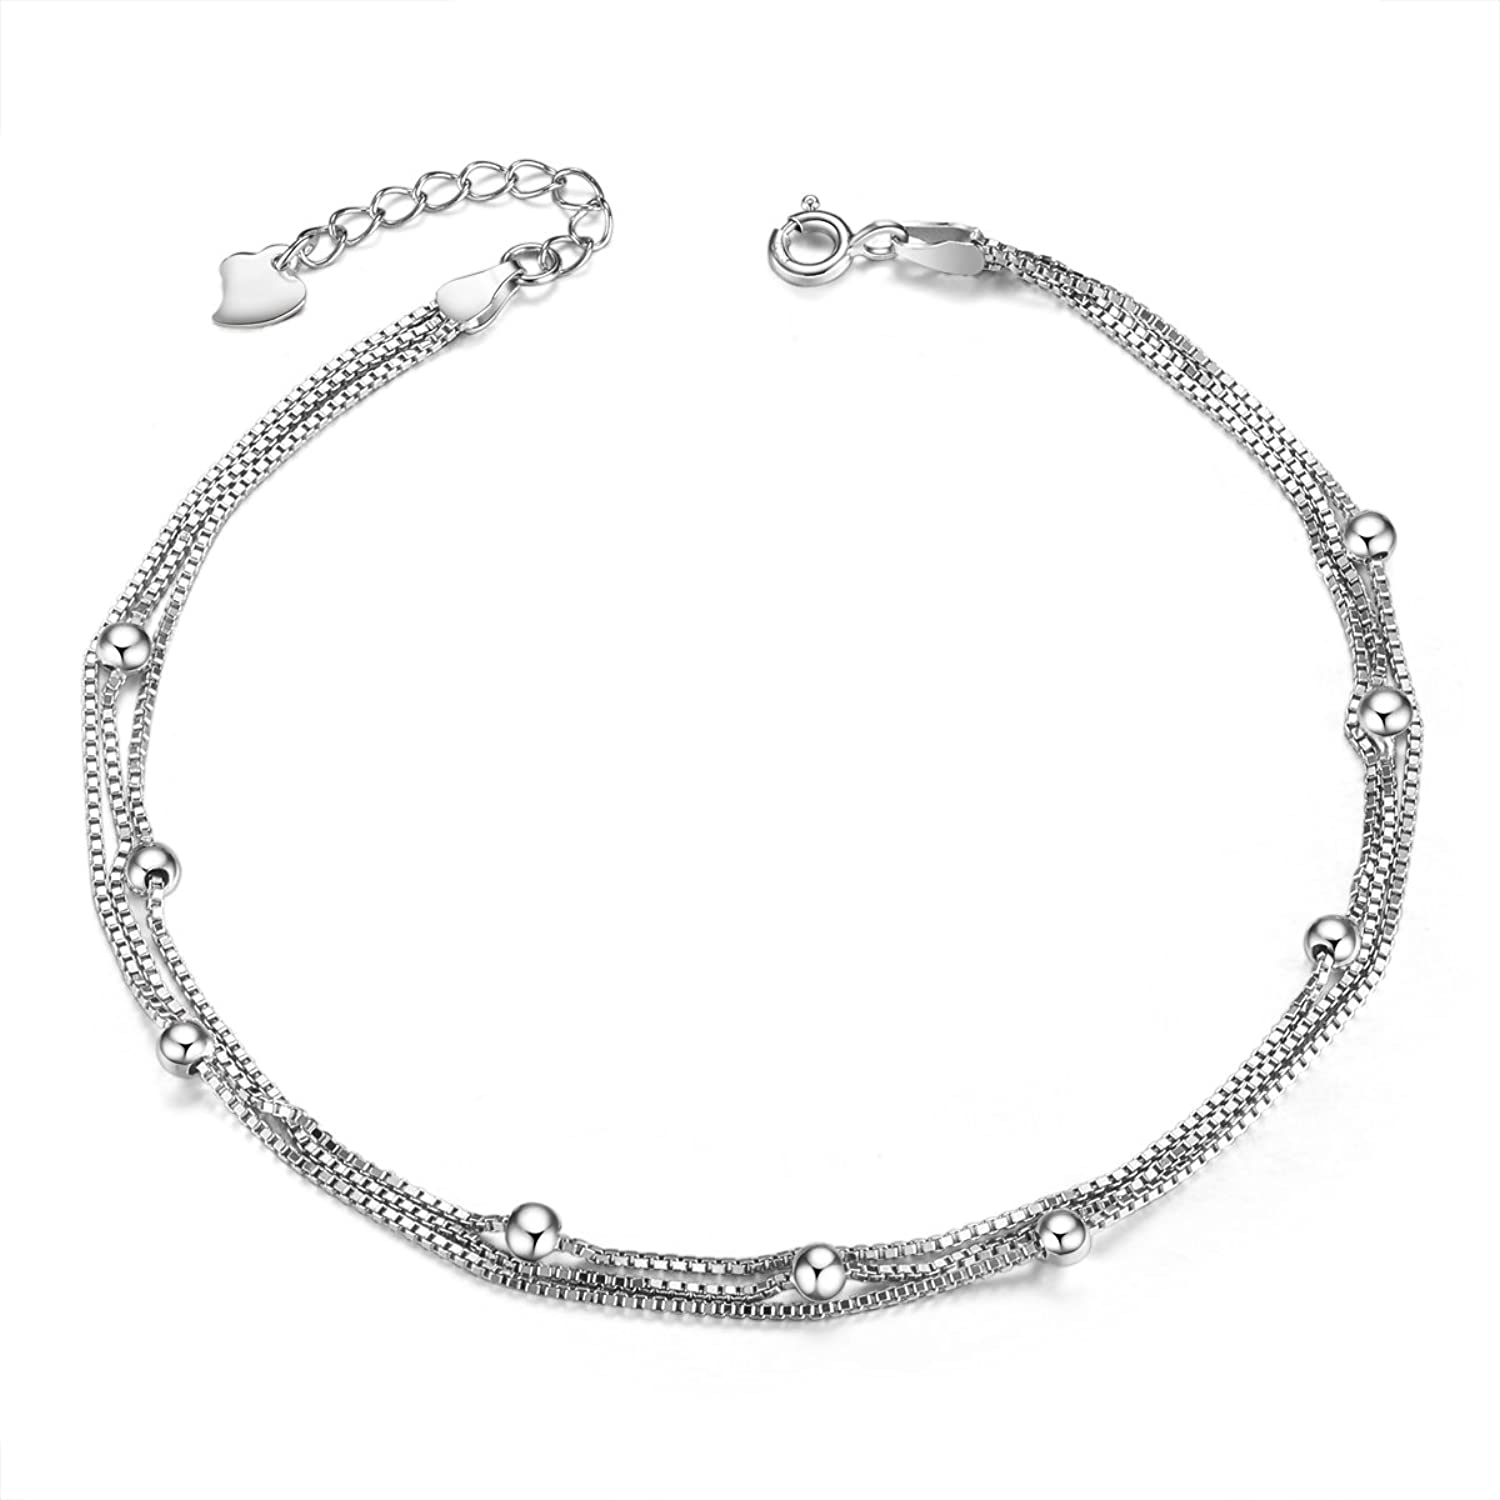 jewelry anklet ladies store star fashion beads women chains anklets product little chain wholesale silver boot foot ankle bracelet sterling